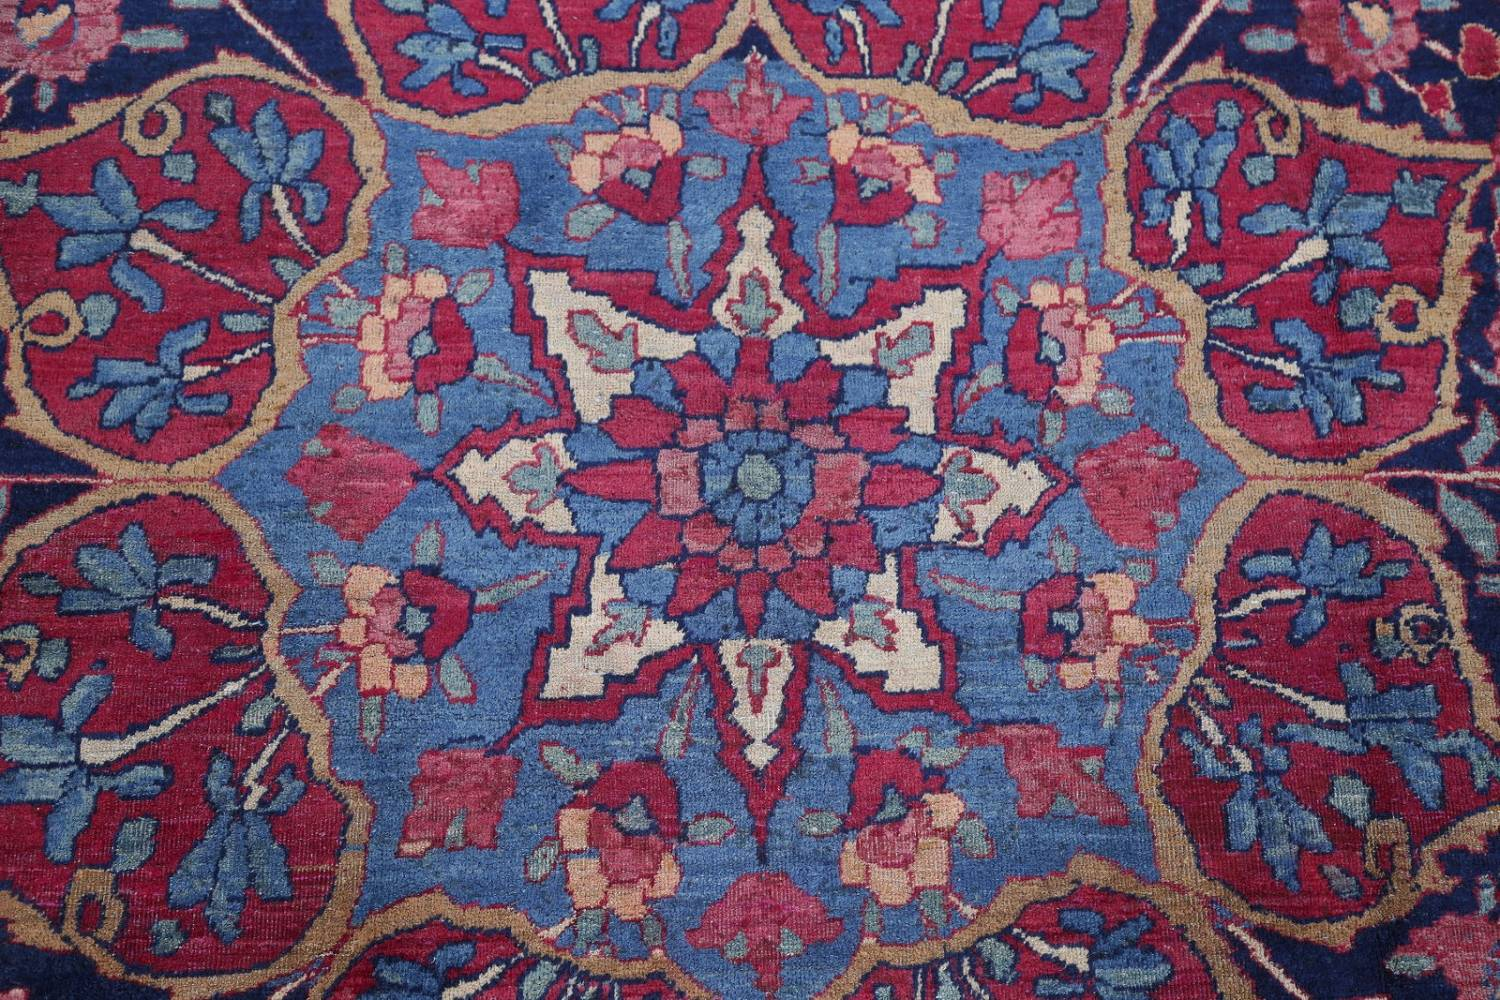 Pre-1900 Vegetable Dye Yazd Antique Persian Hand-Knotted  11x15 Wool Area Rug image 10